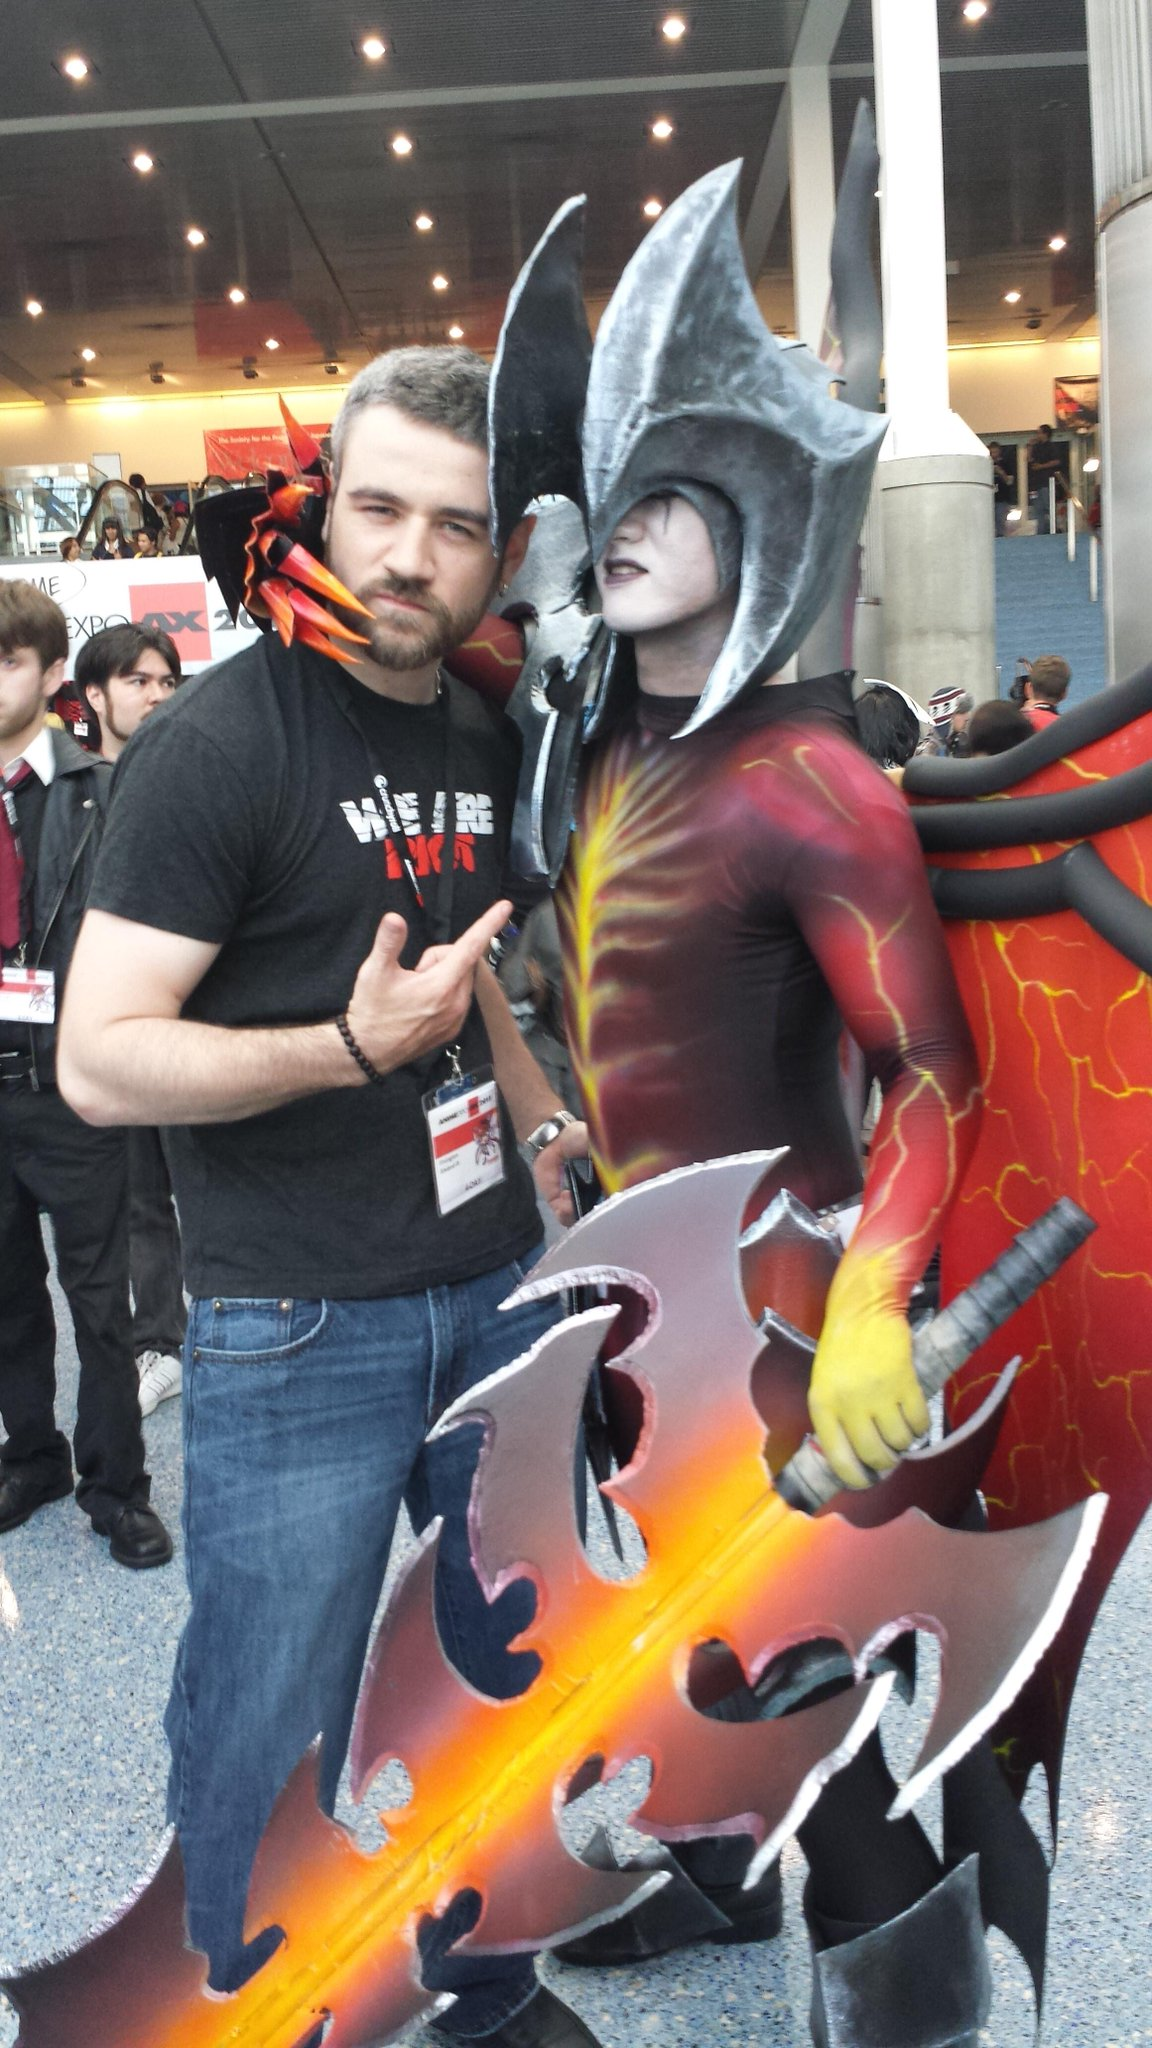 RT @RivingtonThe3rd: Check out this awesome picture of an Aatrox Cosplay at the #AnimeExpo #LeagueofLegends http://t.co/JjY1C7icdo